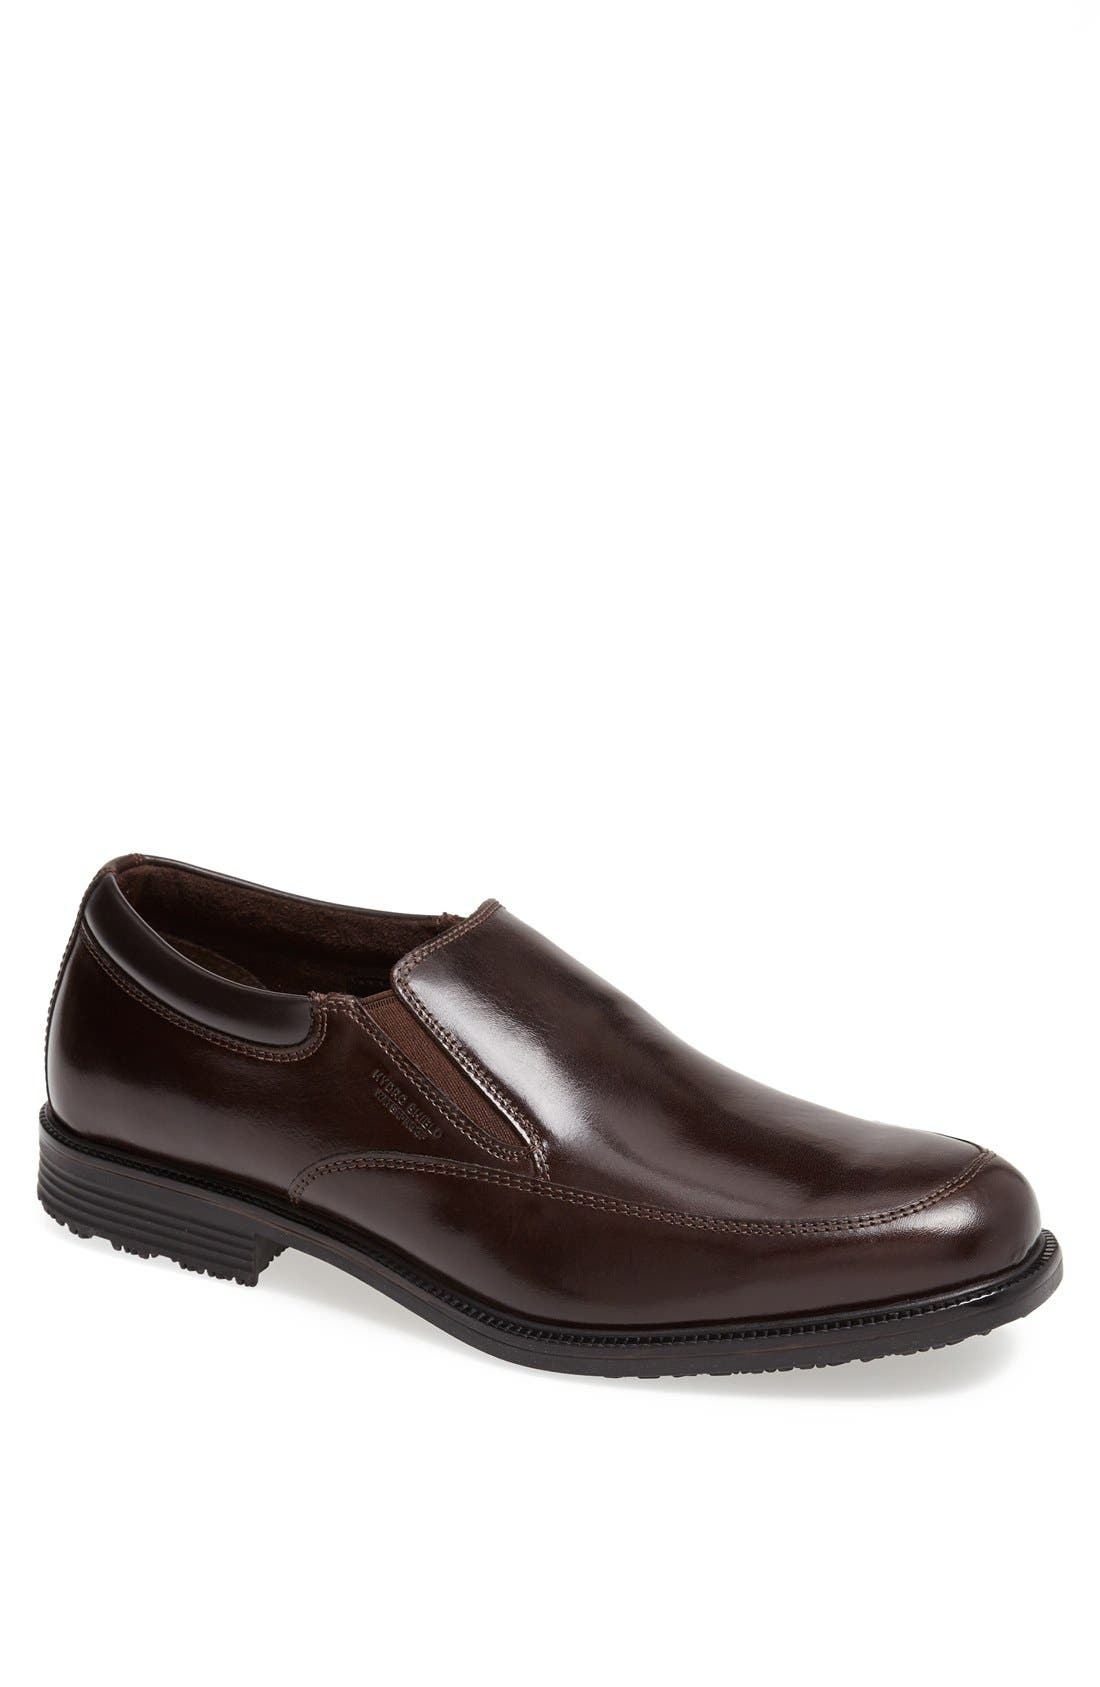 'Essential Details' Waterproof Loafer,                             Main thumbnail 2, color,